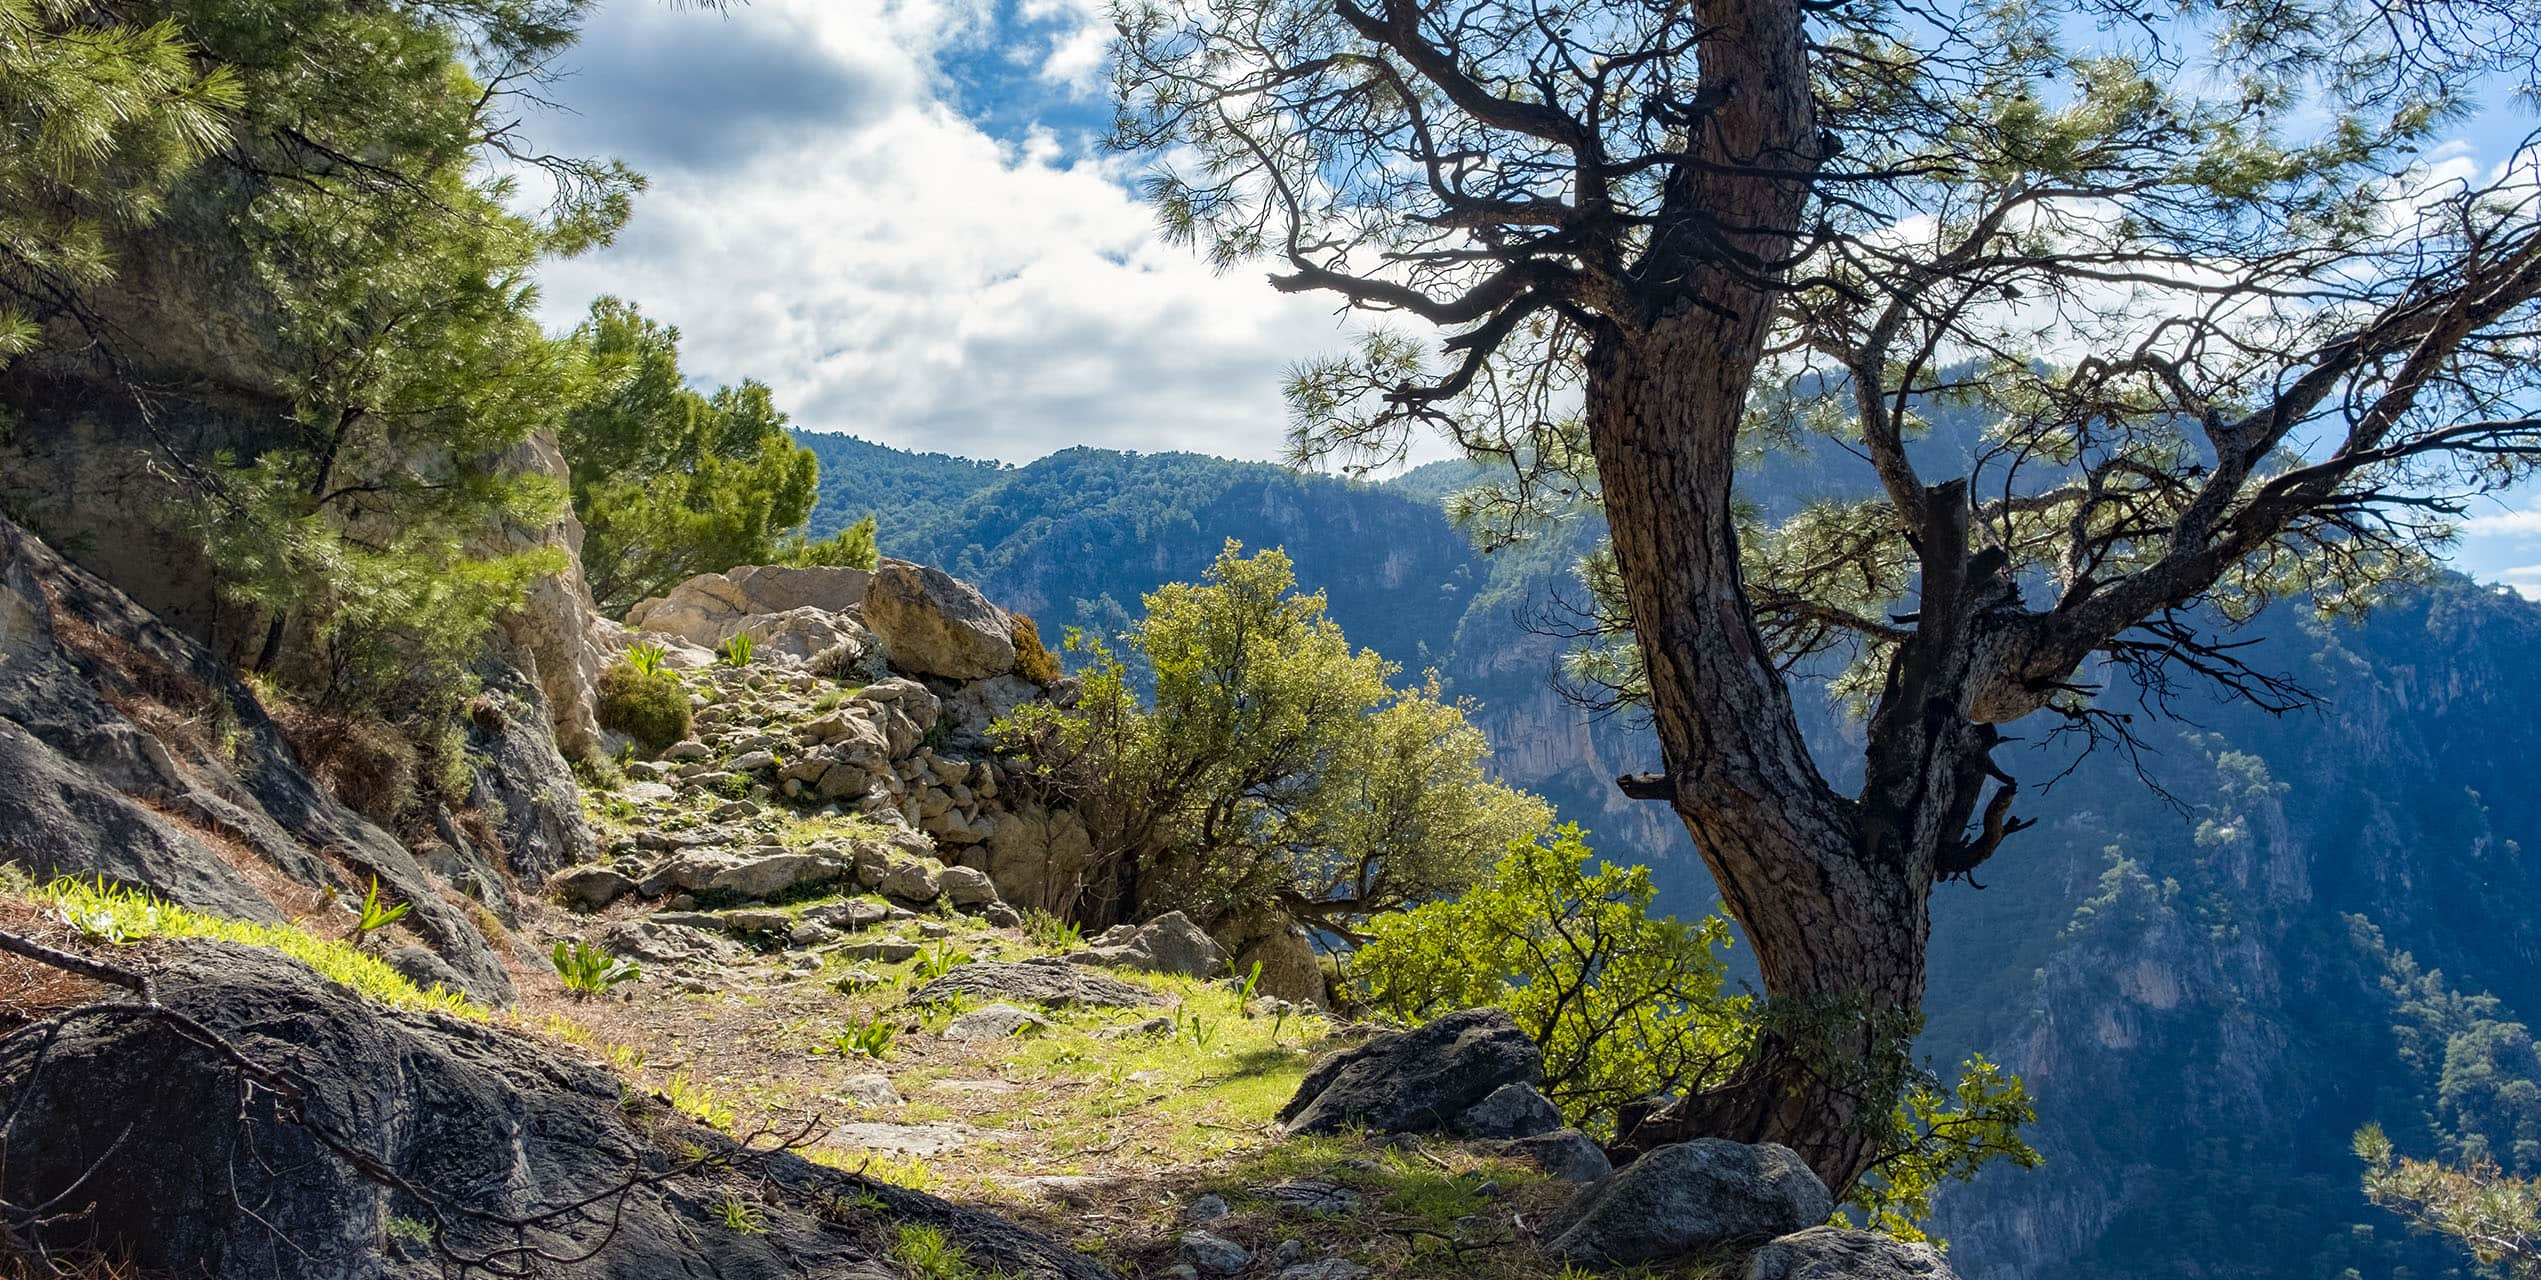 The Lycian Way, discovered in early 90s by Kate Clow